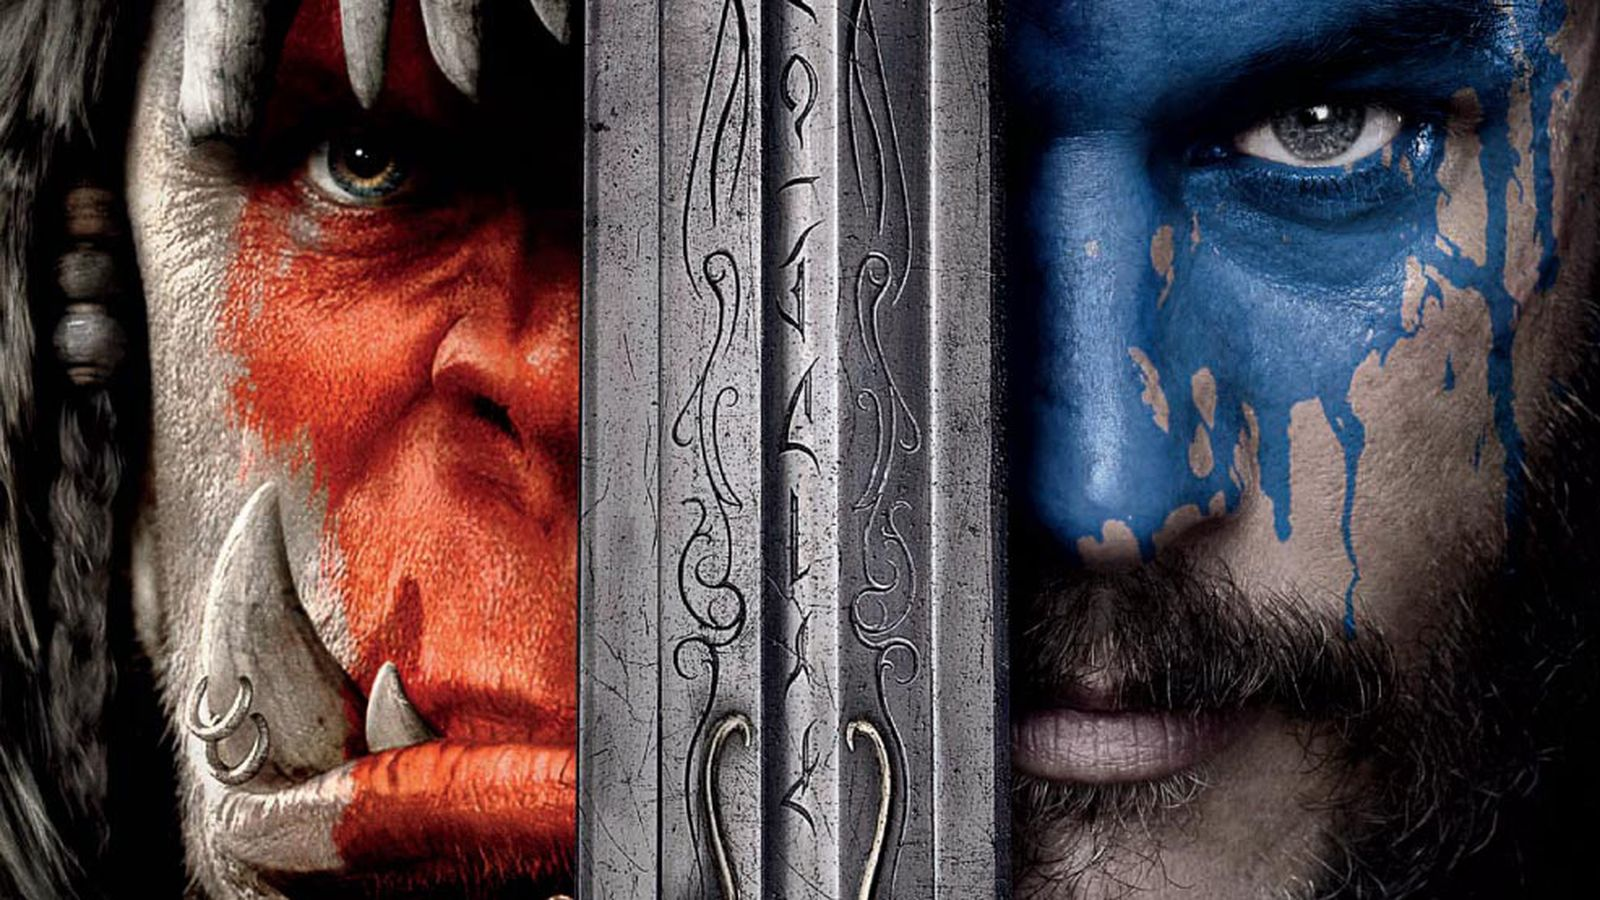 warcraft-movie-poster-full_987.0.0.jpg